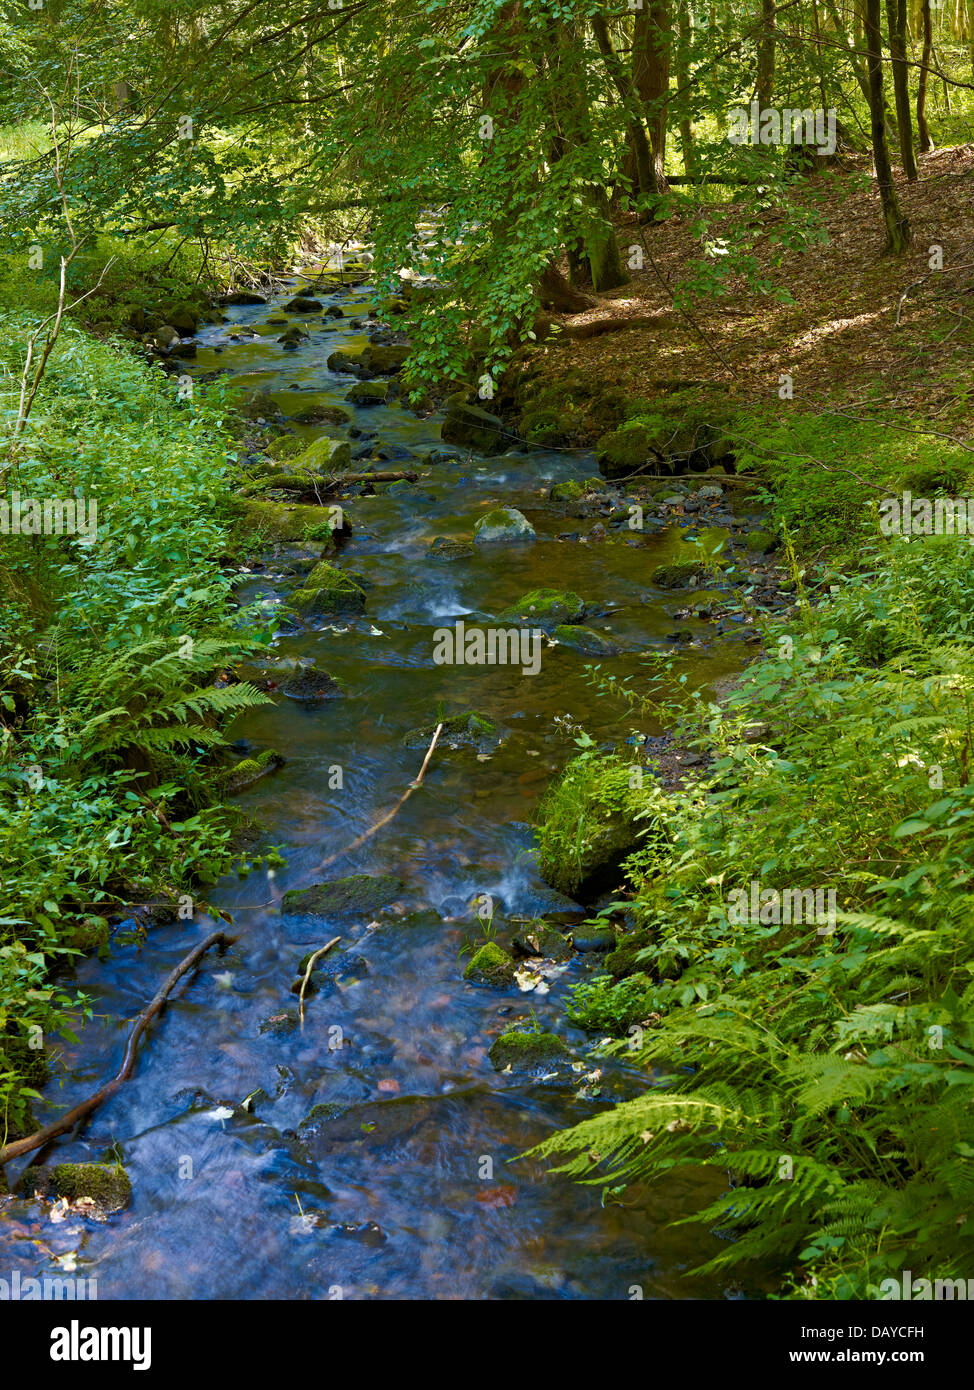 River Vesser in Biosphere Reserve Vessertal Thuringian Forest, Thuringia, Germany - Stock Image